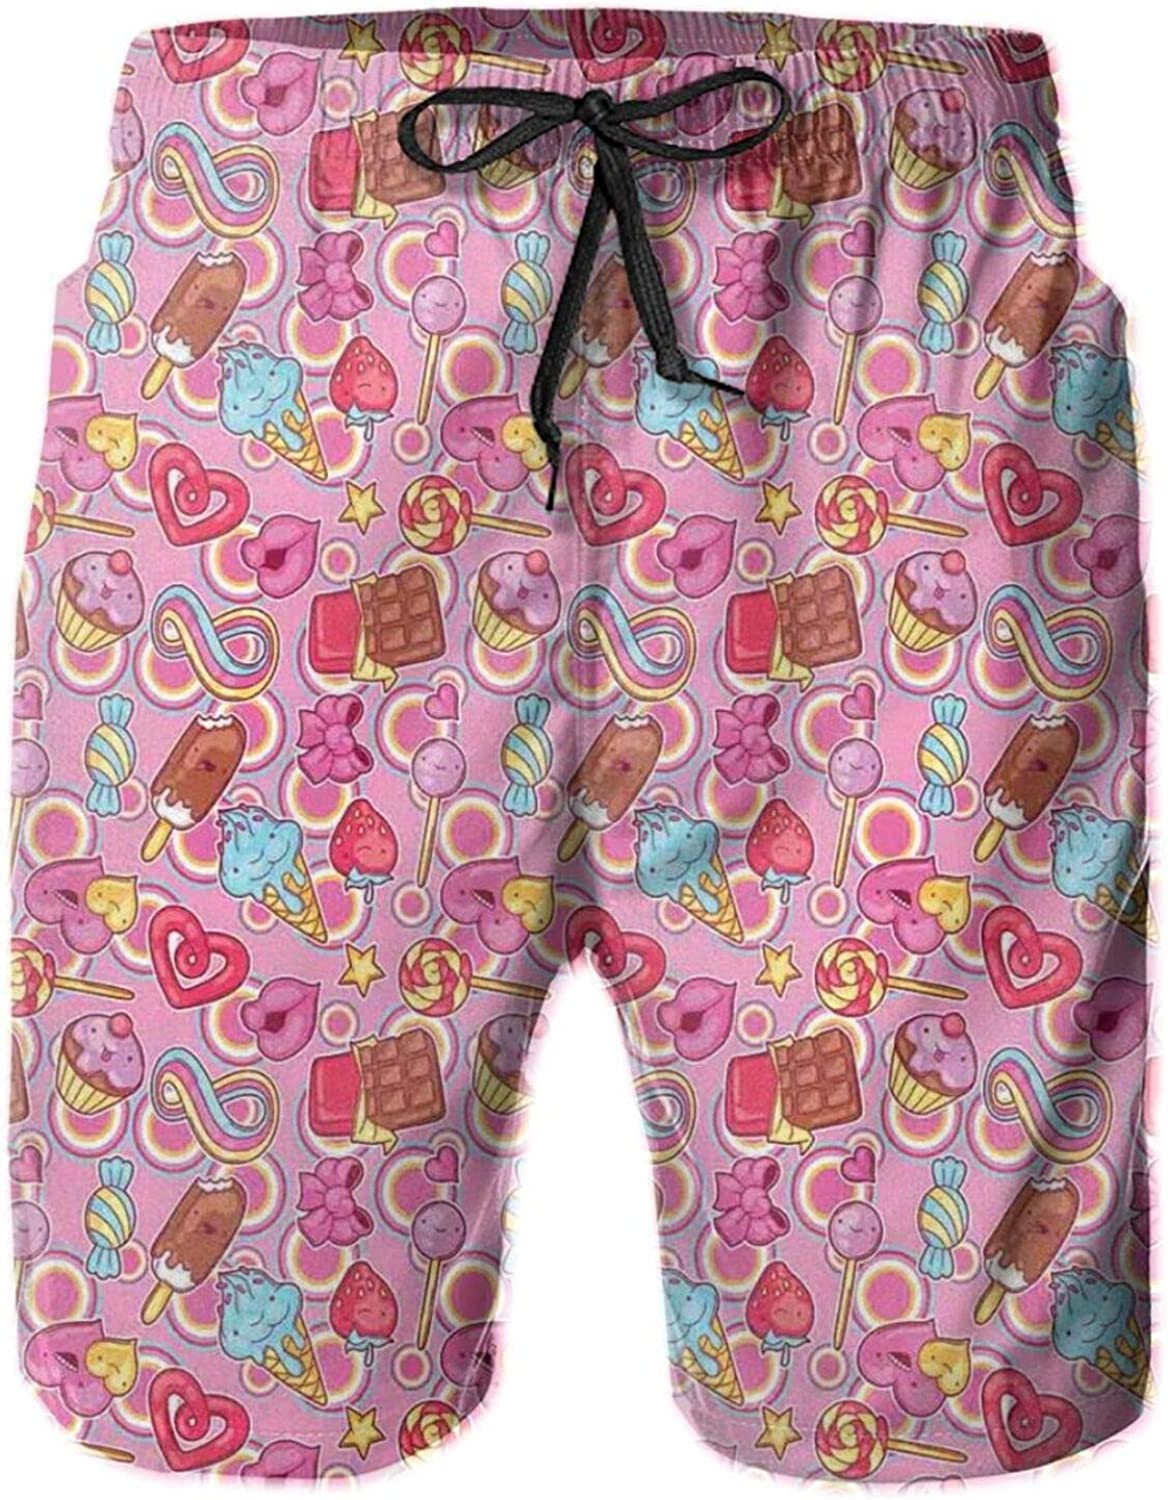 MUJAQ Sweets Pattern with Cartoon Style Candies and Chocolate Cartoon Style Colorful Design Mens Swim Trucks Shorts with Mesh Lining,L